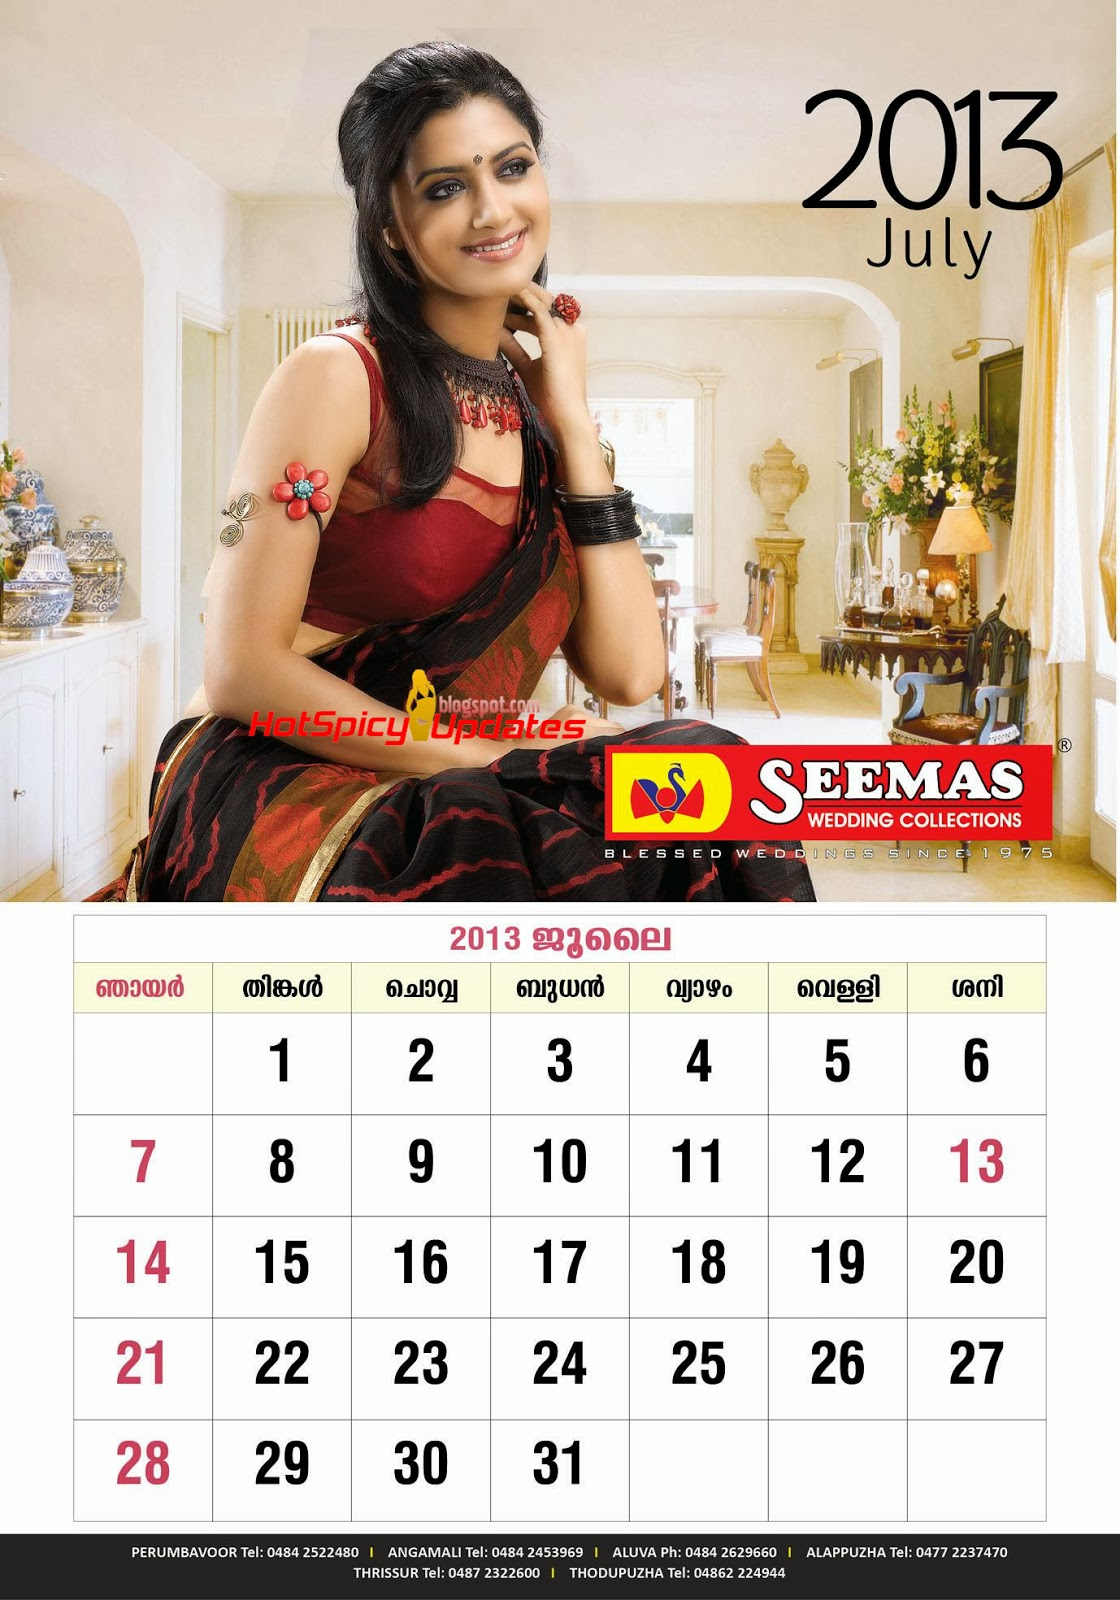 Mamtha Mohandas Hot Cute Seemas Wedding Collections Calender Stills